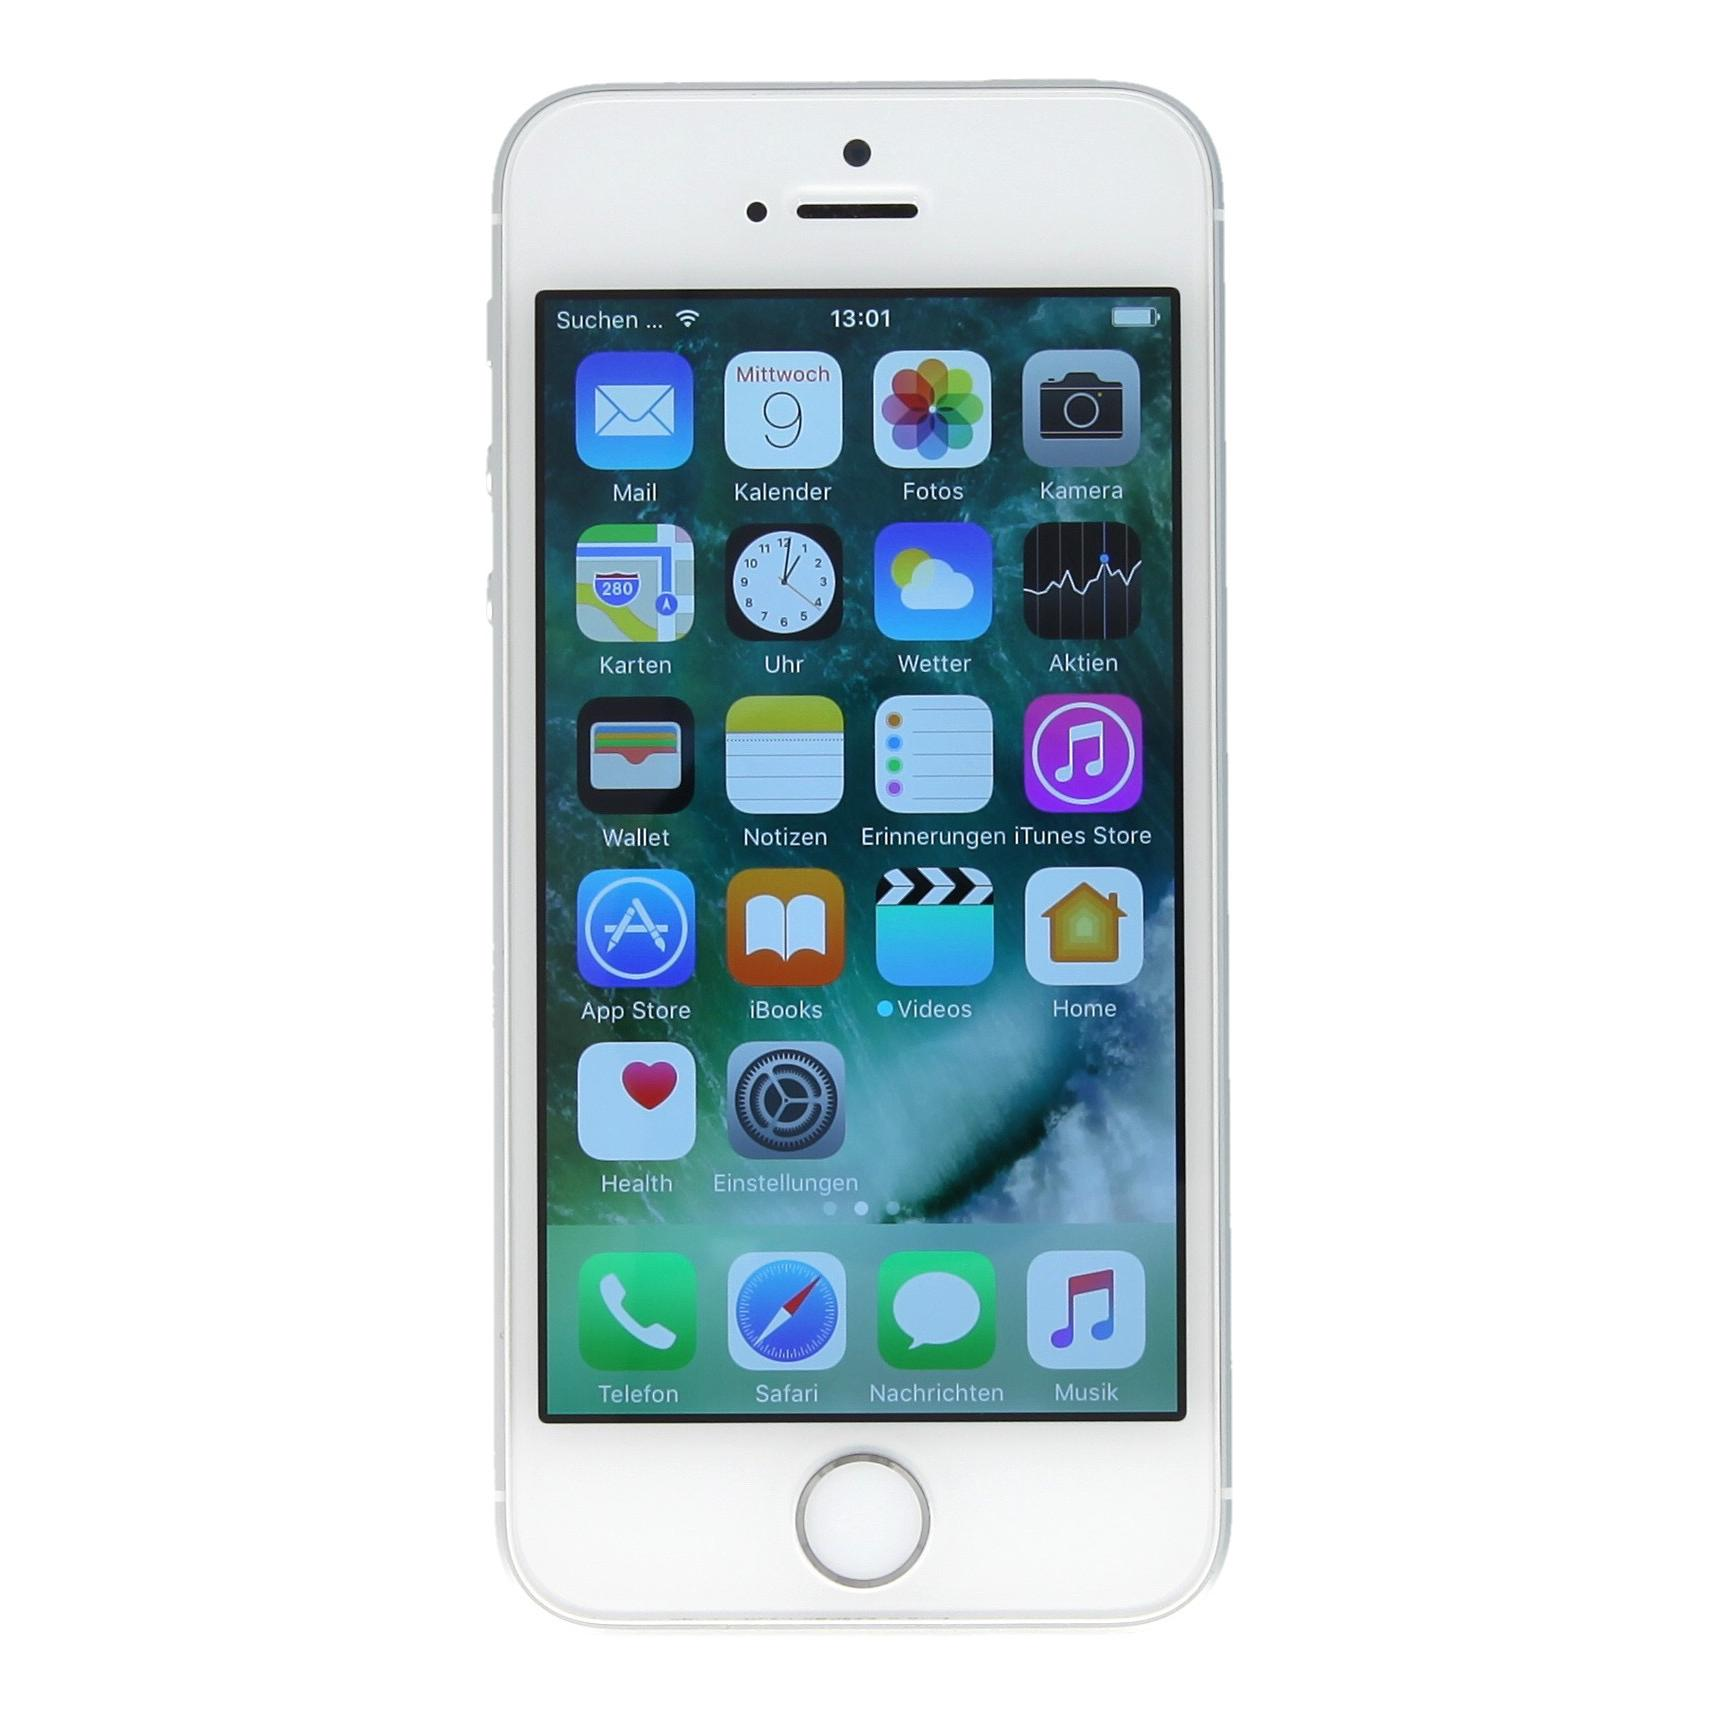 apple iphone se a1723 128 gb plata muy bueno asgoodasnew. Black Bedroom Furniture Sets. Home Design Ideas